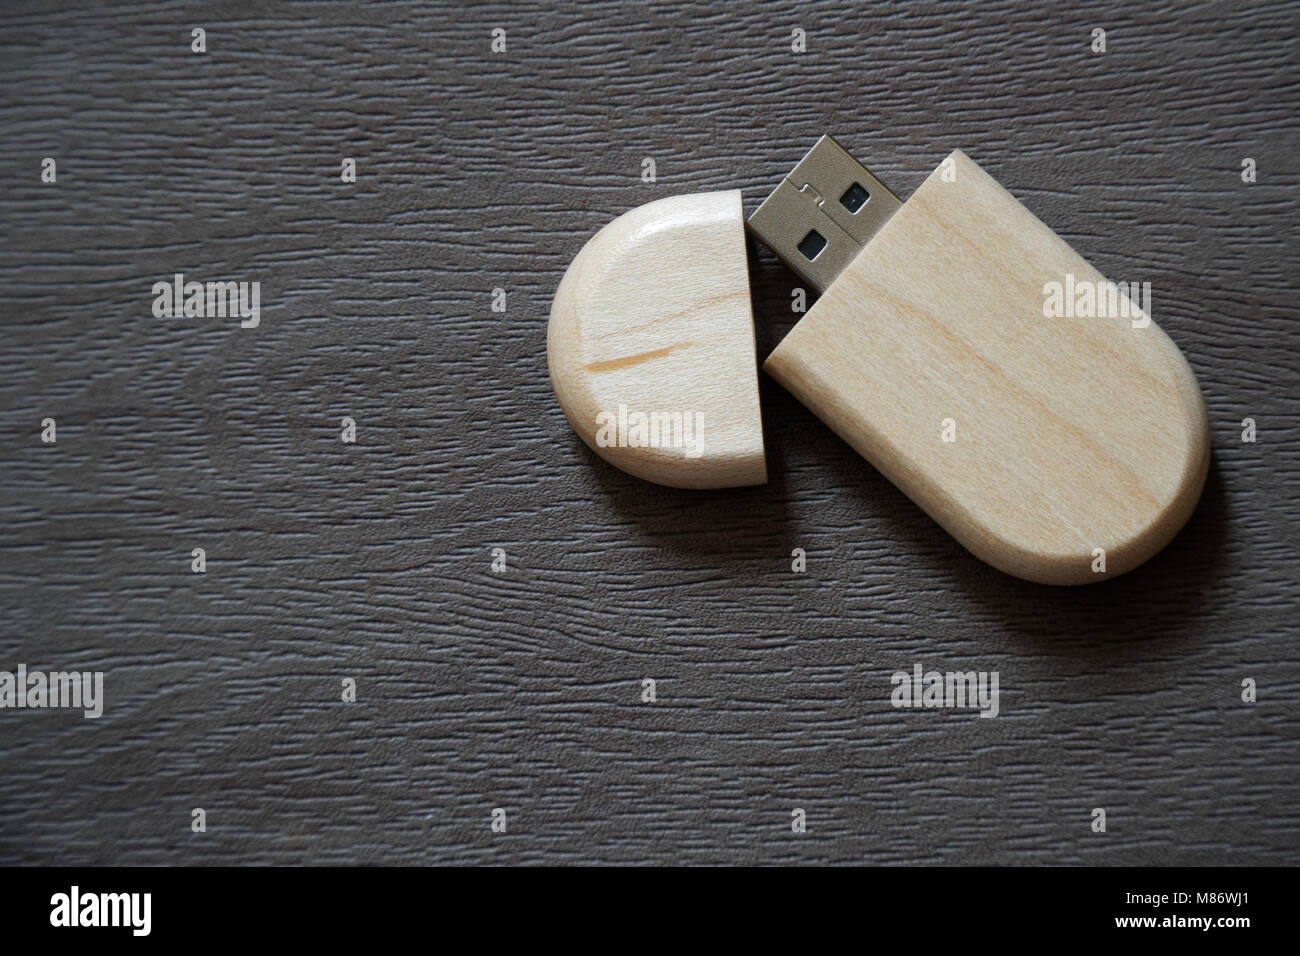 Usb flash drive with wooden surface on desk for USB port plug-in computer laptop for transfer data and backup business - Stock Image